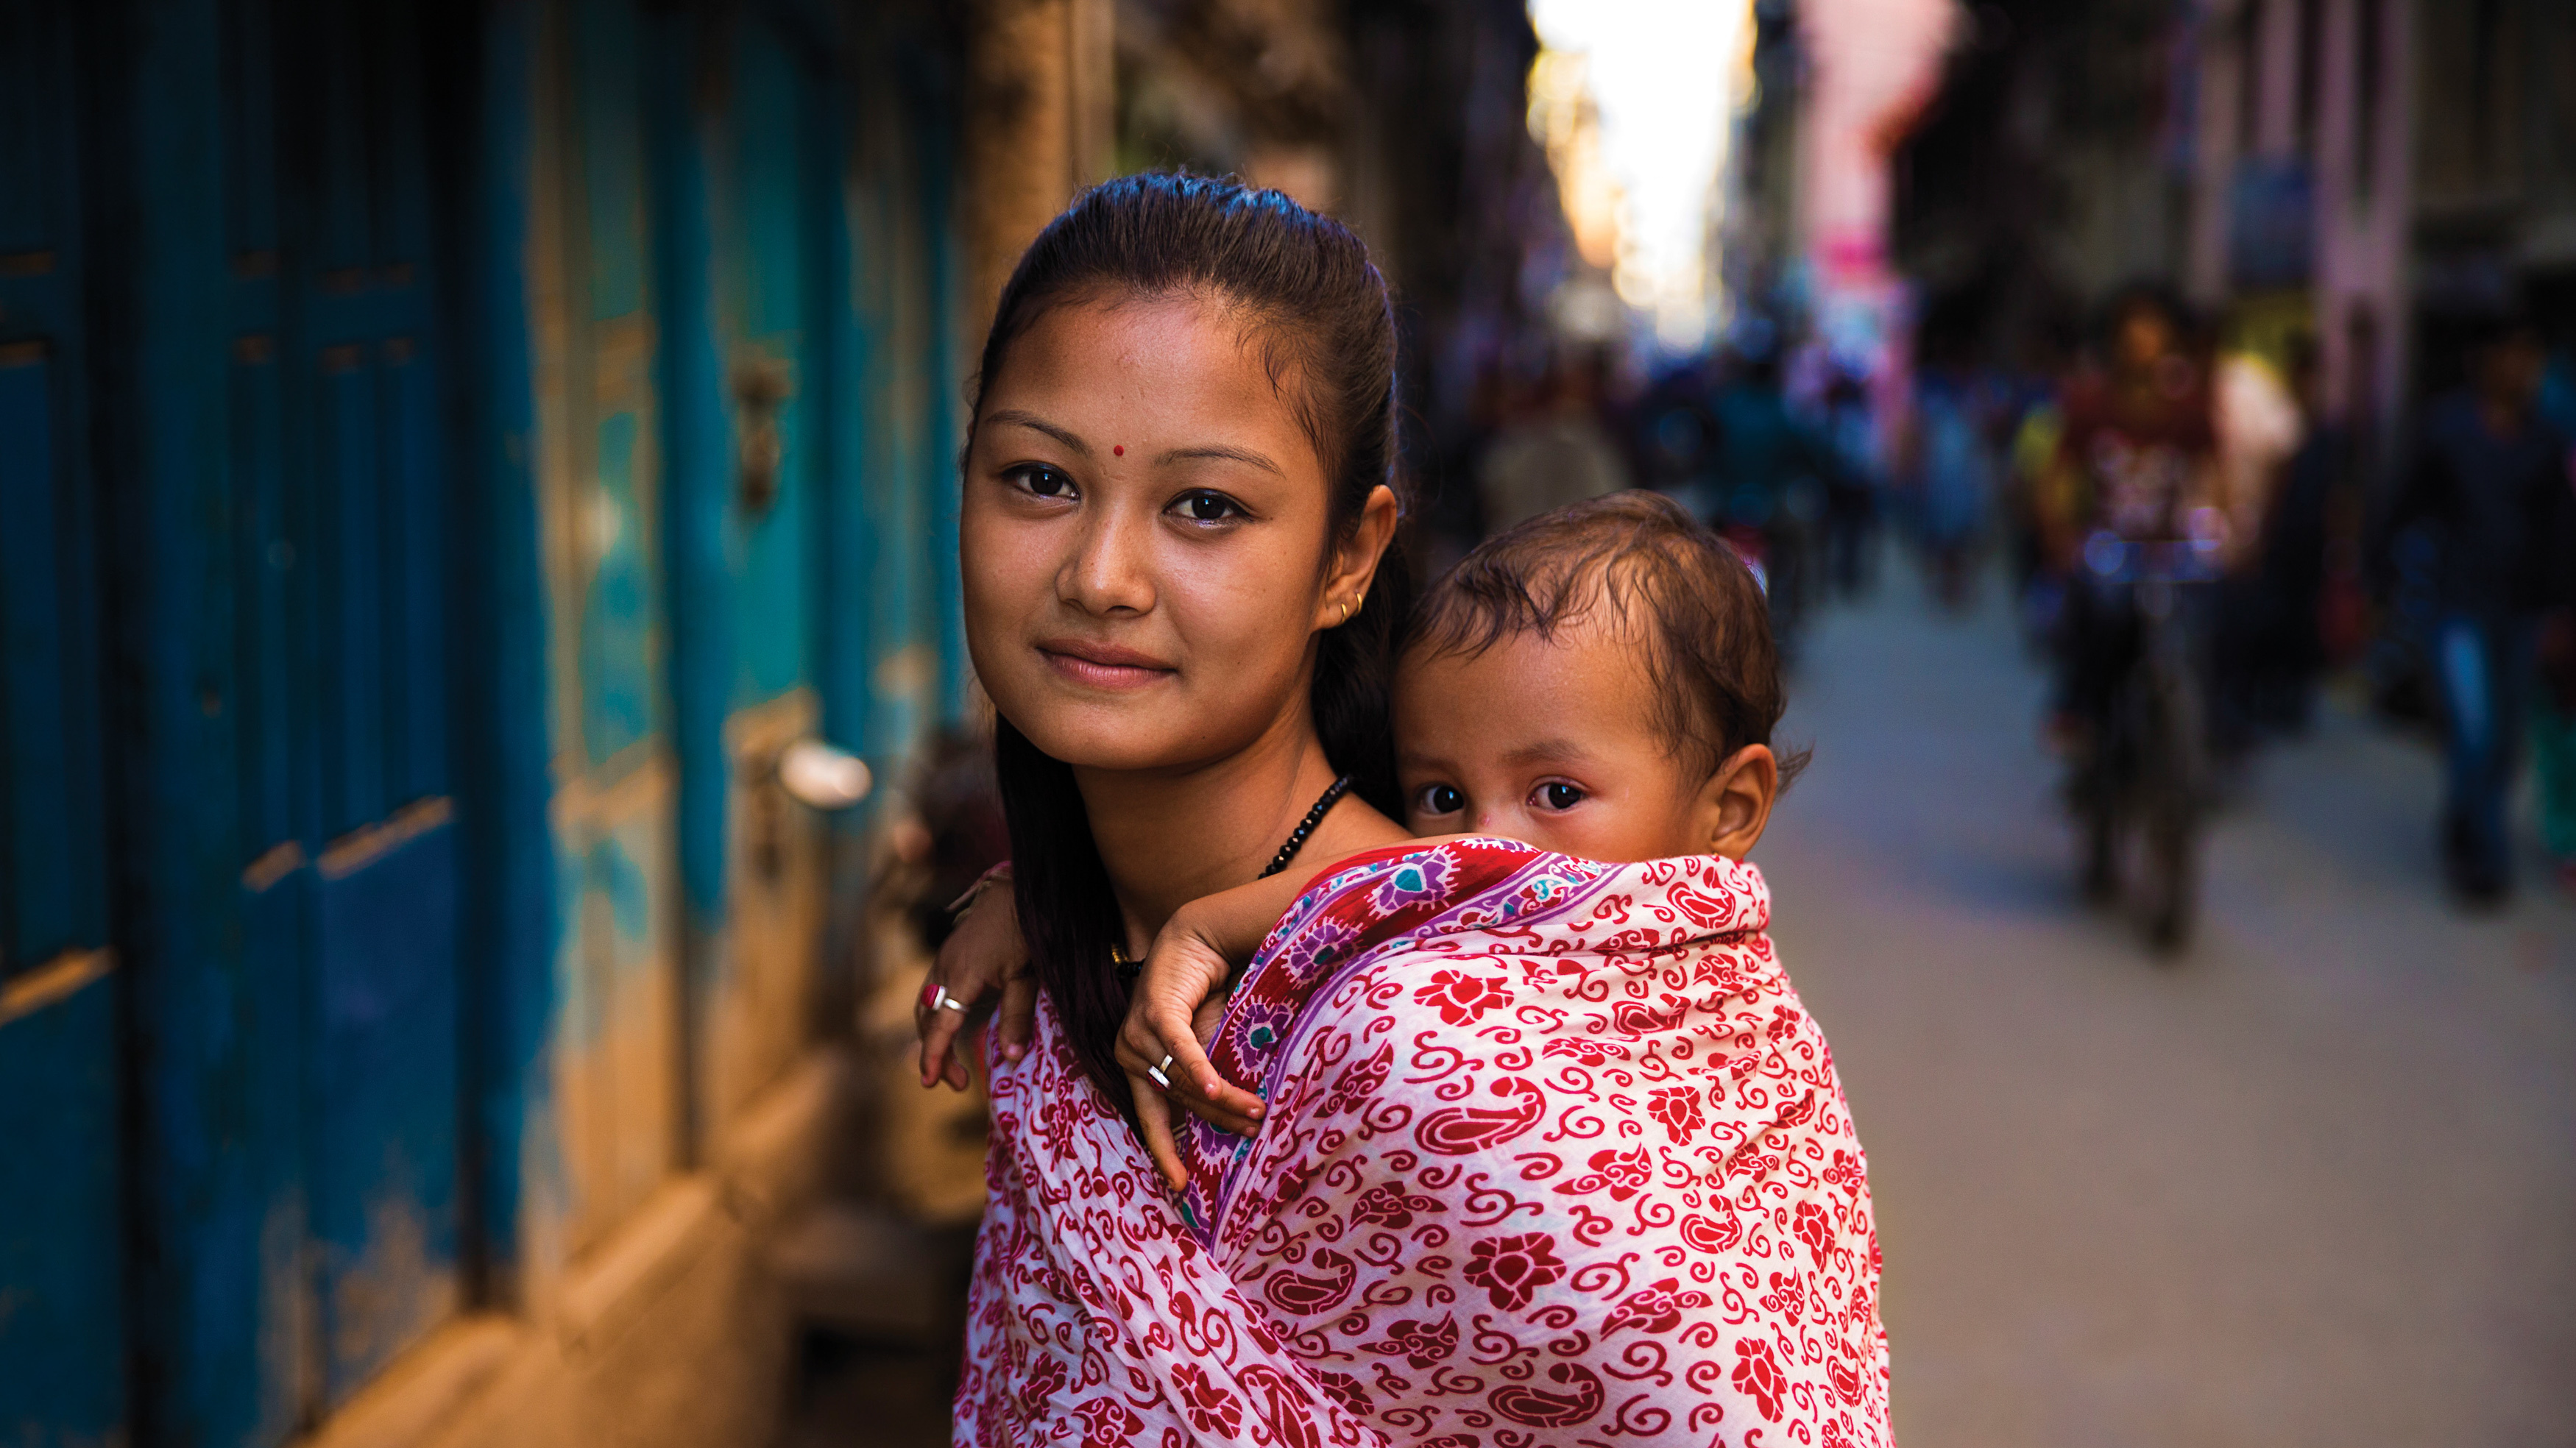 p.163-nepal-photo-by-mihaela-noroc-from-the-atlas-of-beauty-published-by-ten-speed-press-82_wide-d147dfe63b9b68ba8ab44eed80678fe2682e2aaa Aaa 「new」music Video